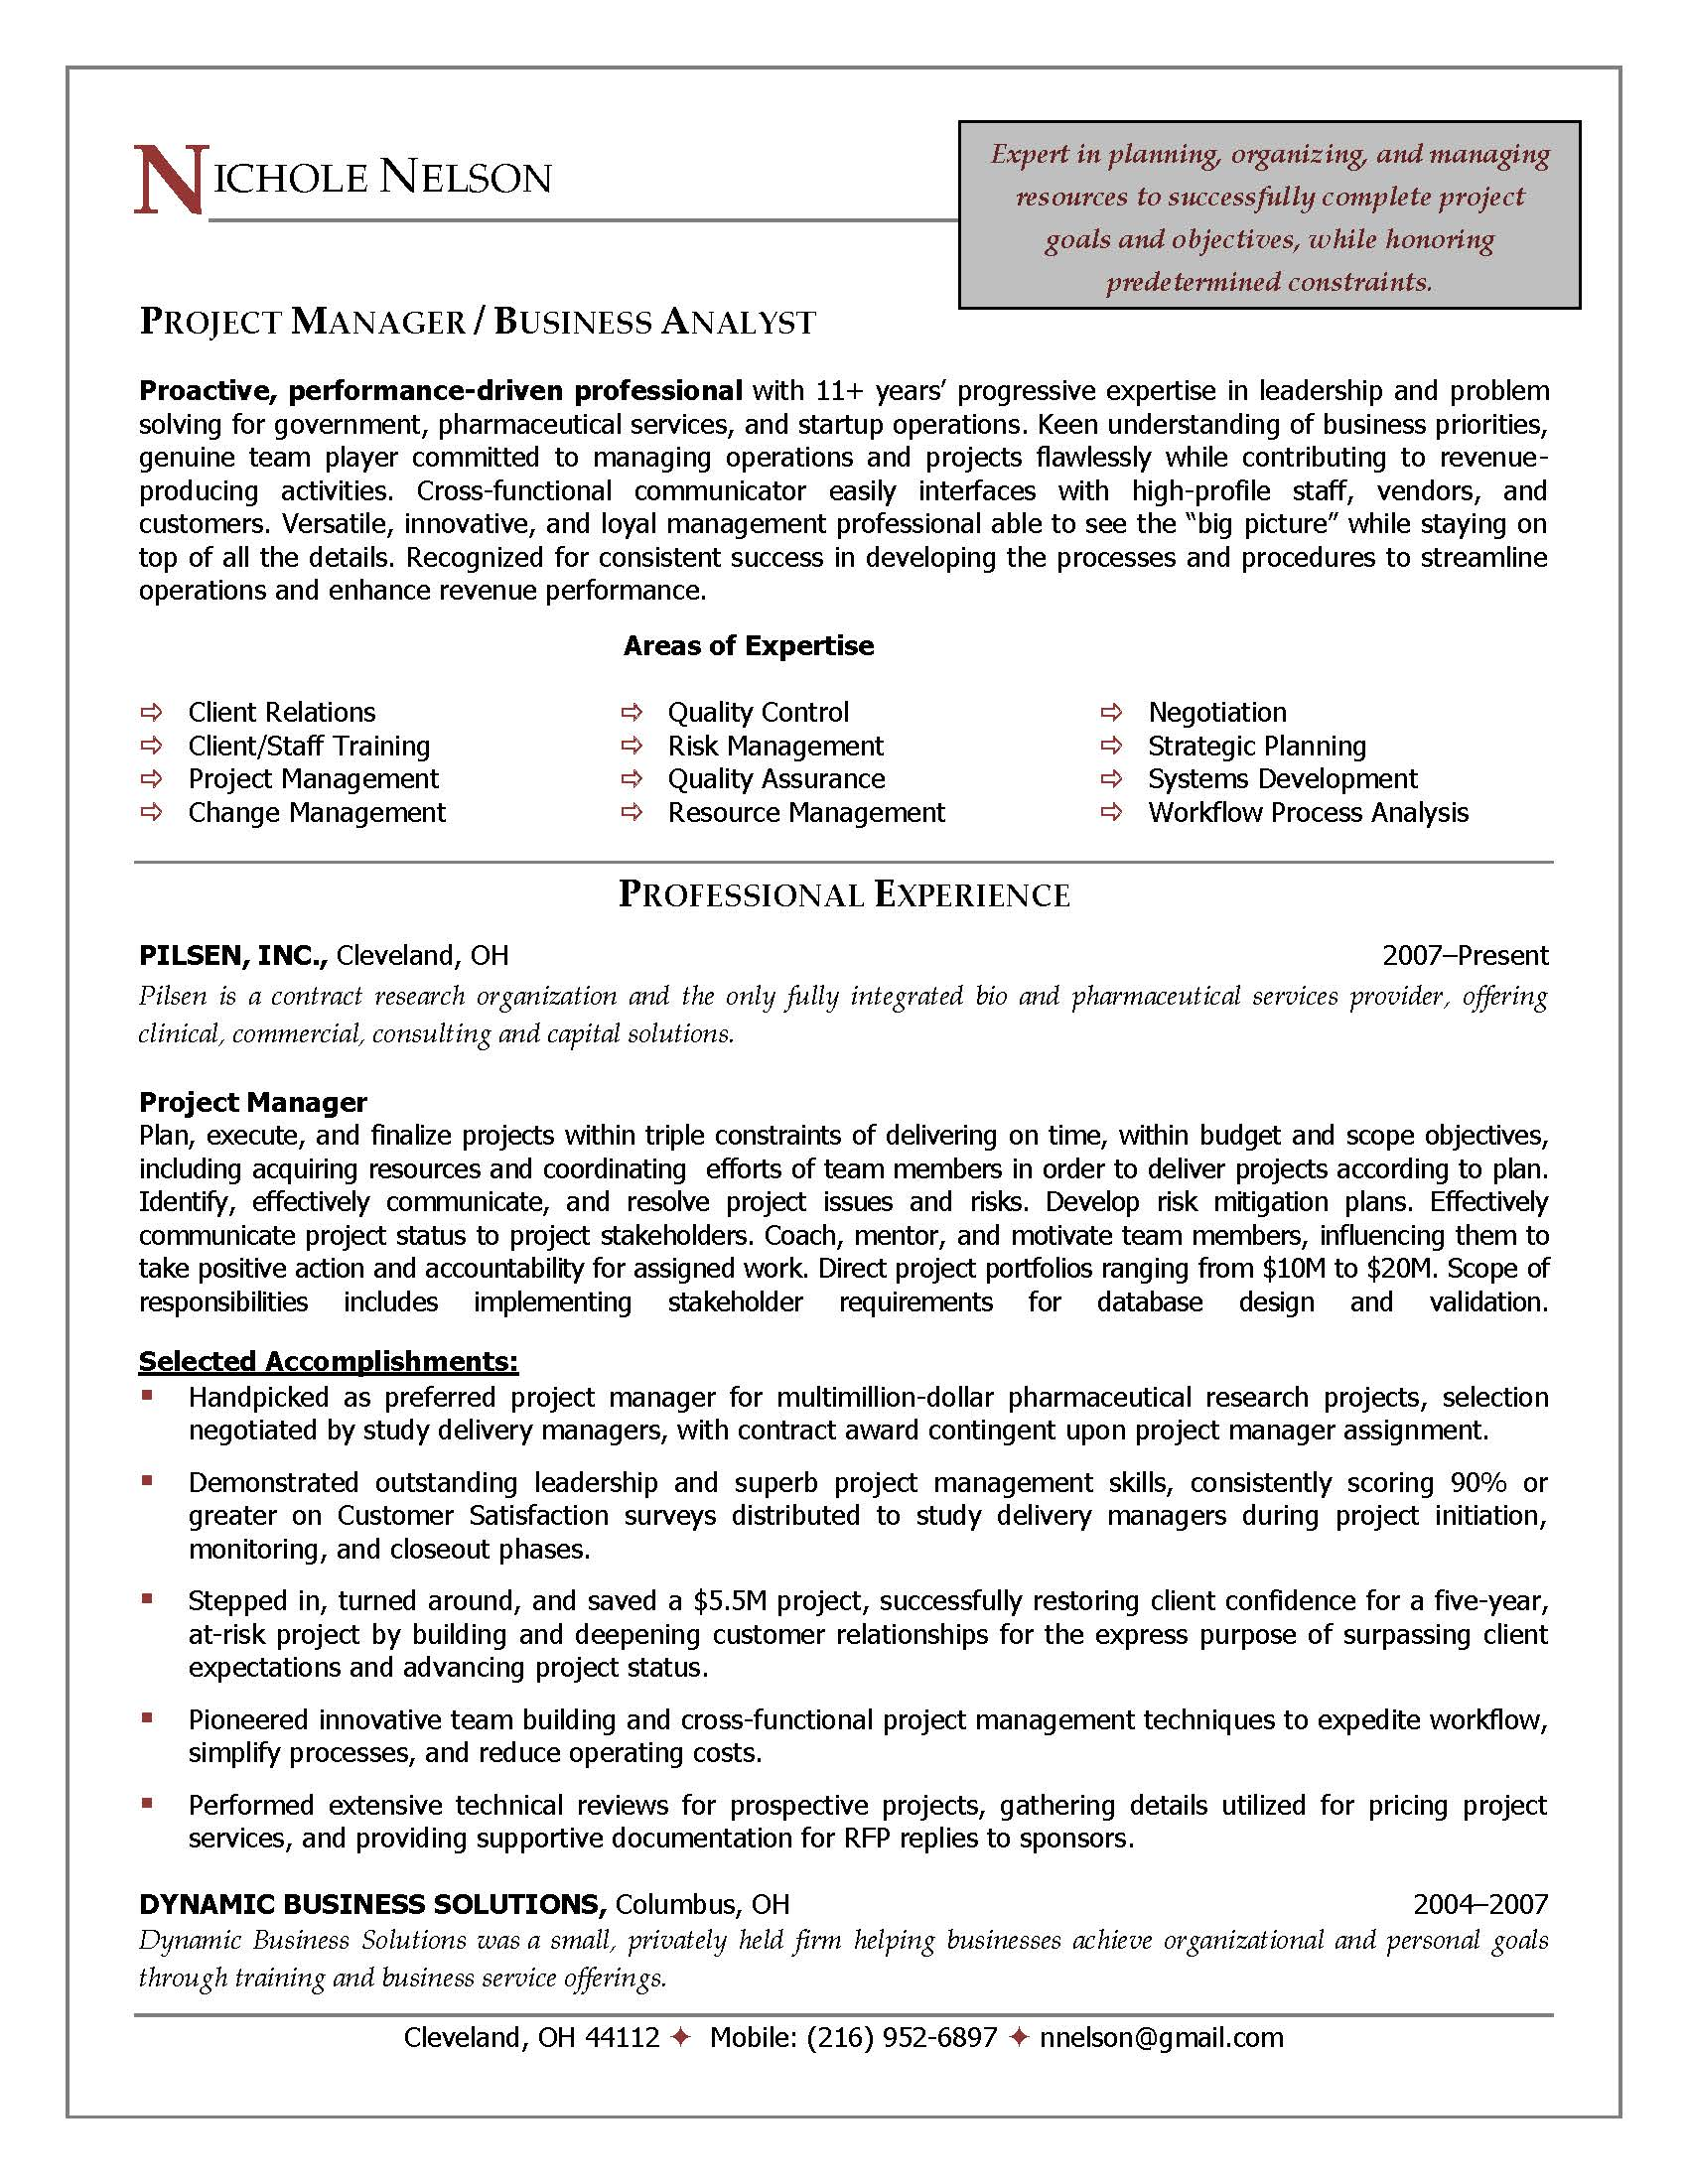 Sample Cover Letter Project Manager Position Choice Image - Cover ...